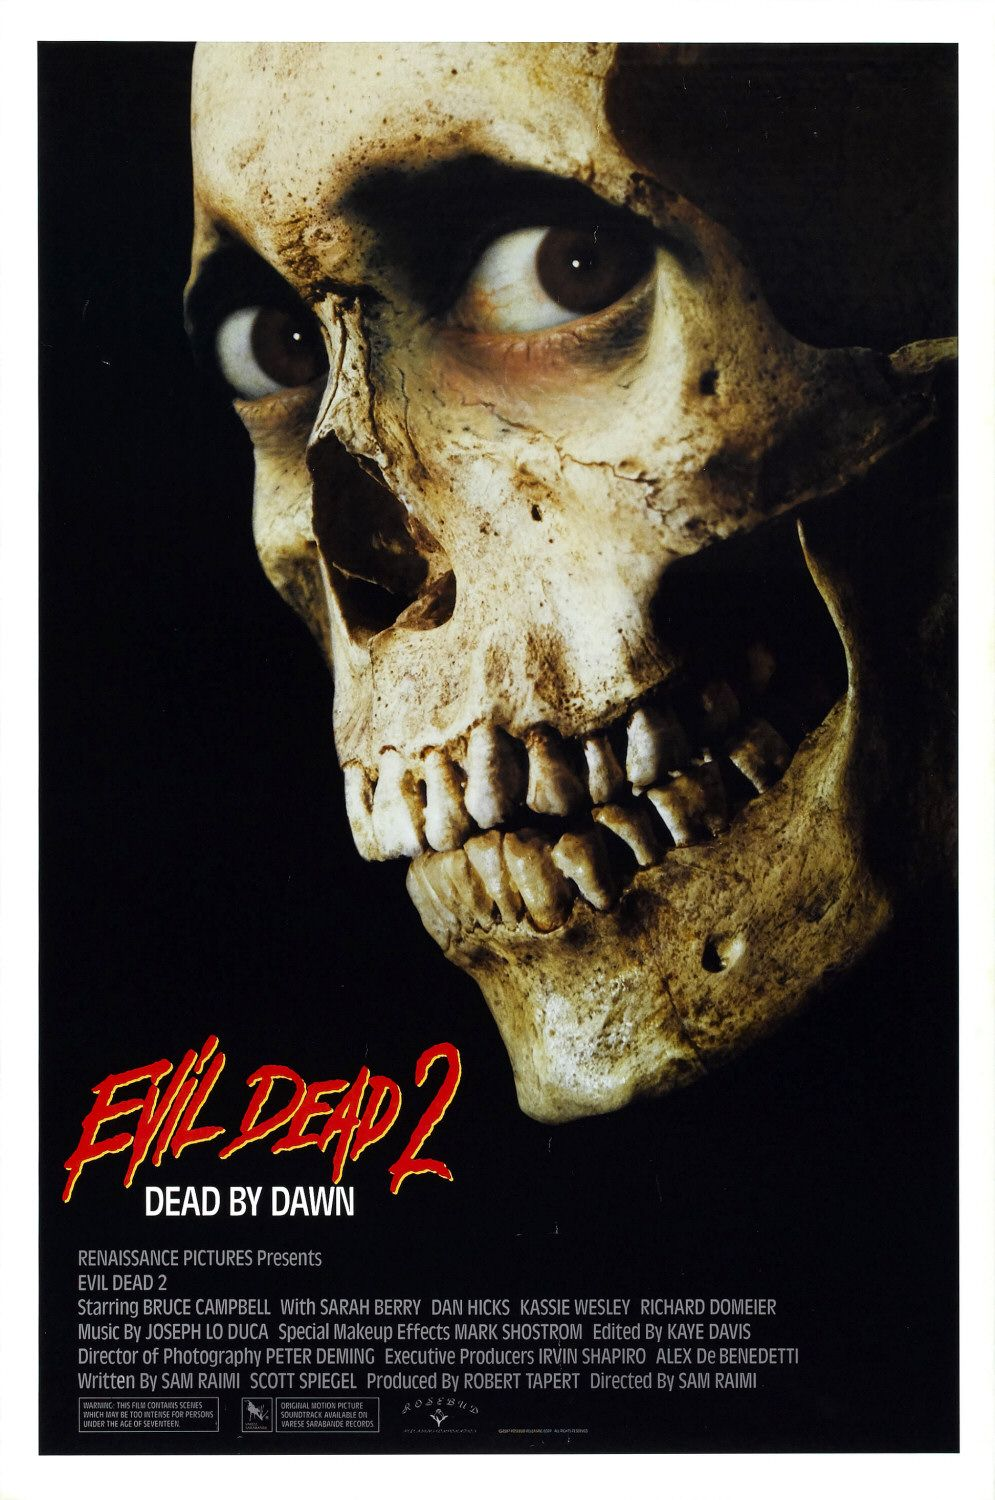 evildead2poster - Evil Dead 2 - Remake or Sequel Debate Put to Rest